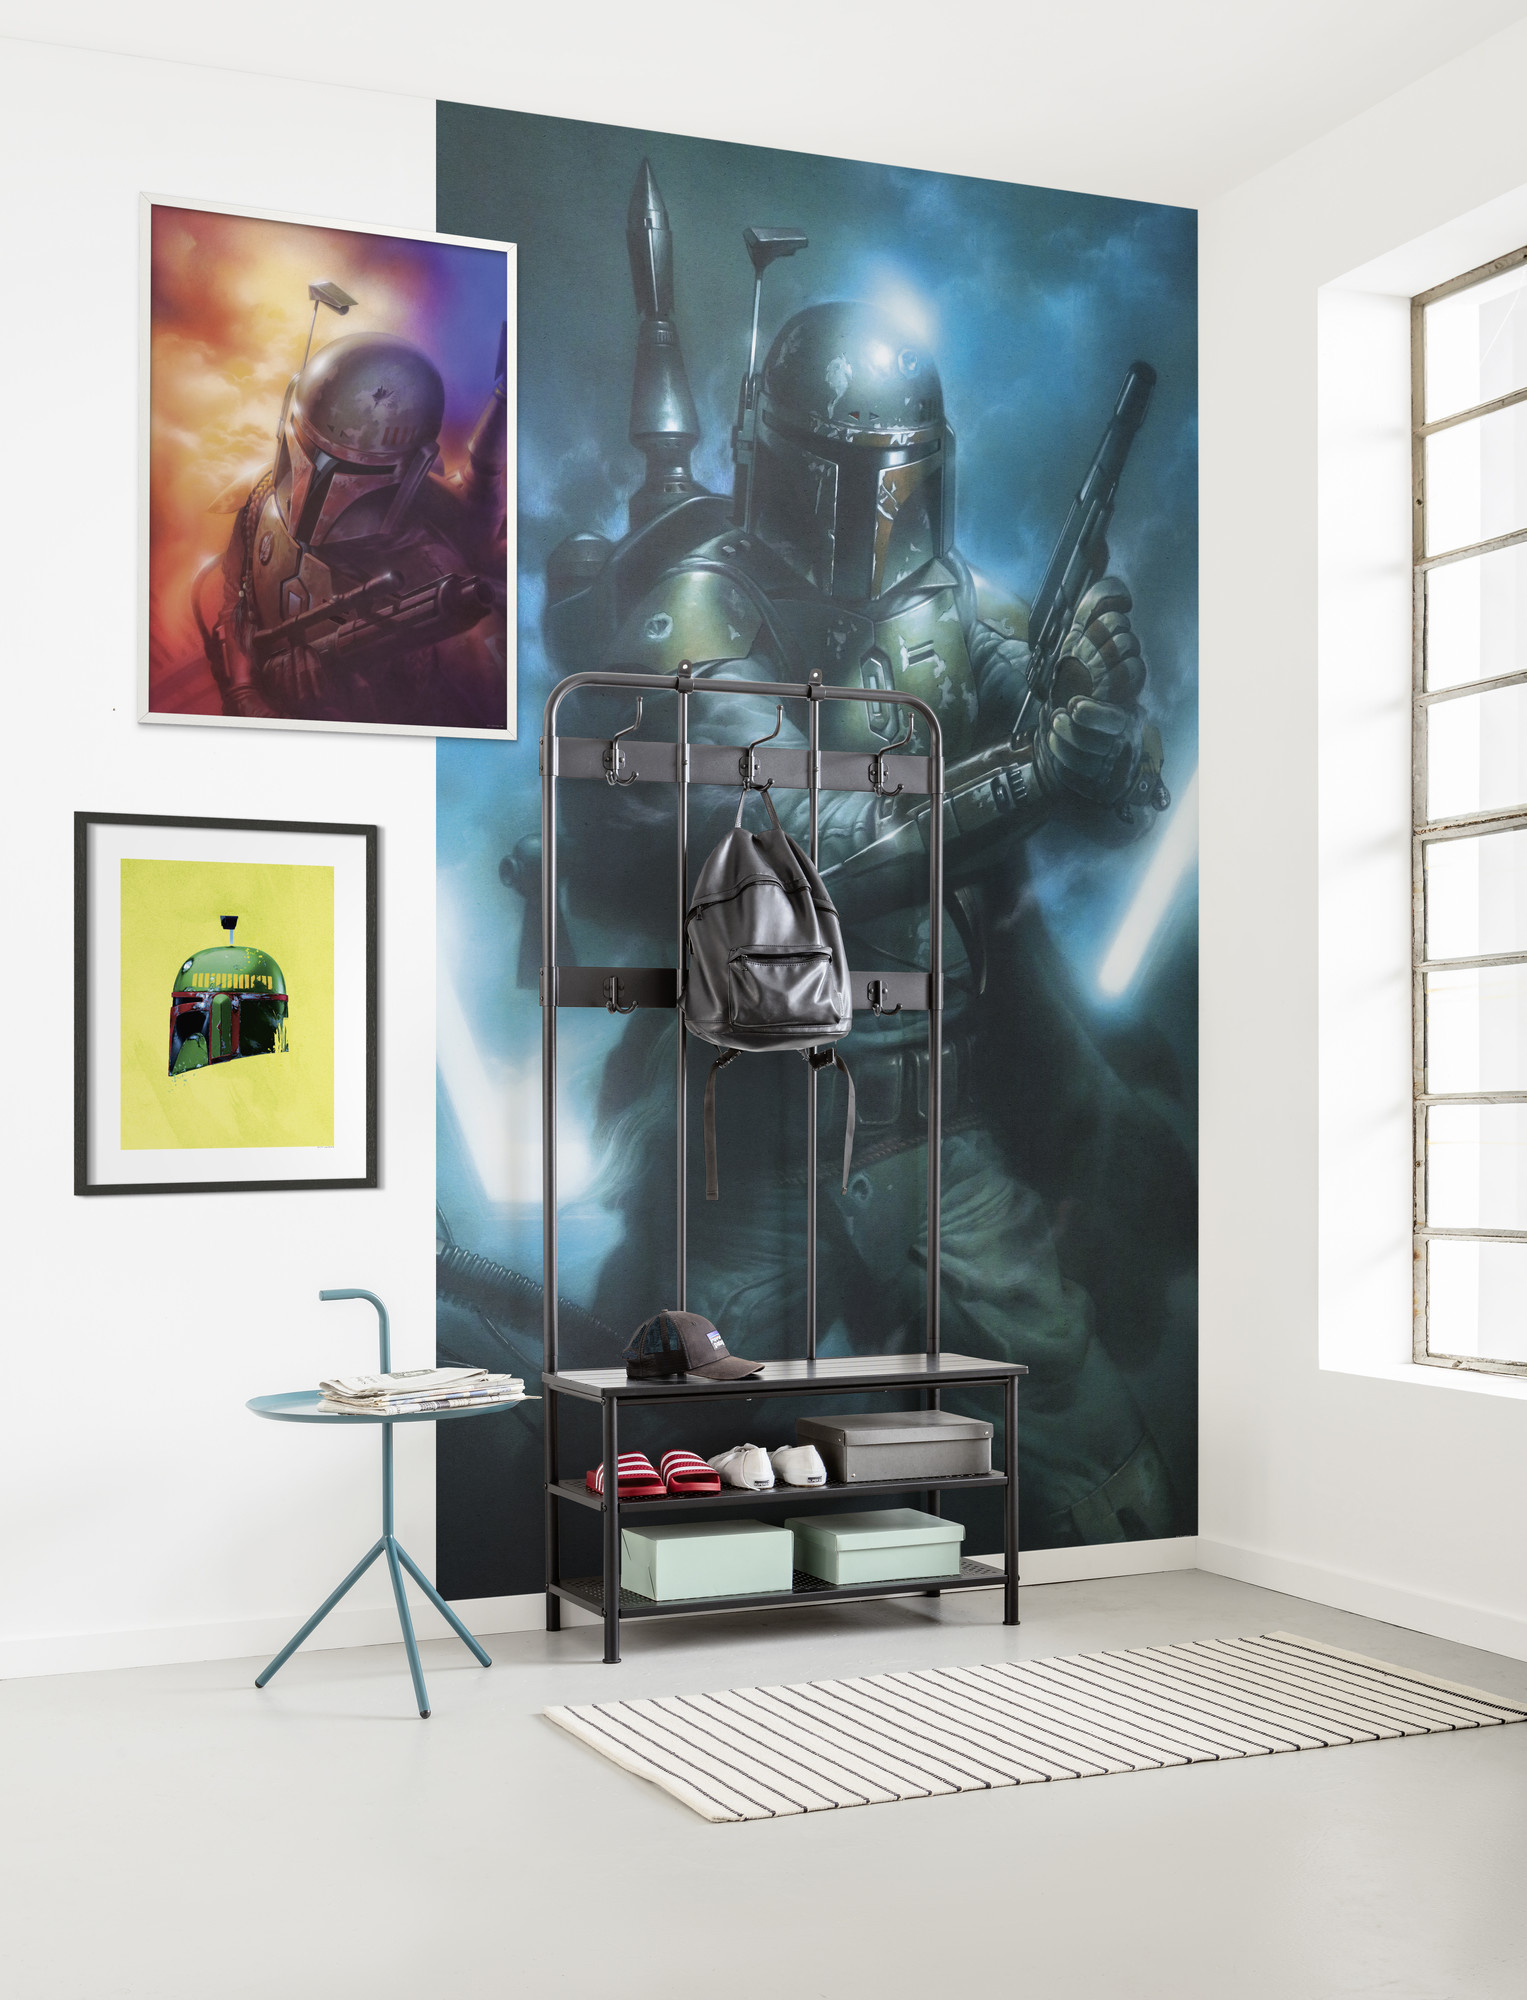 Disney Edition 4 Kinderbehang Komar - Kinderkamer behang Star Wars Classic Bounty Hunter